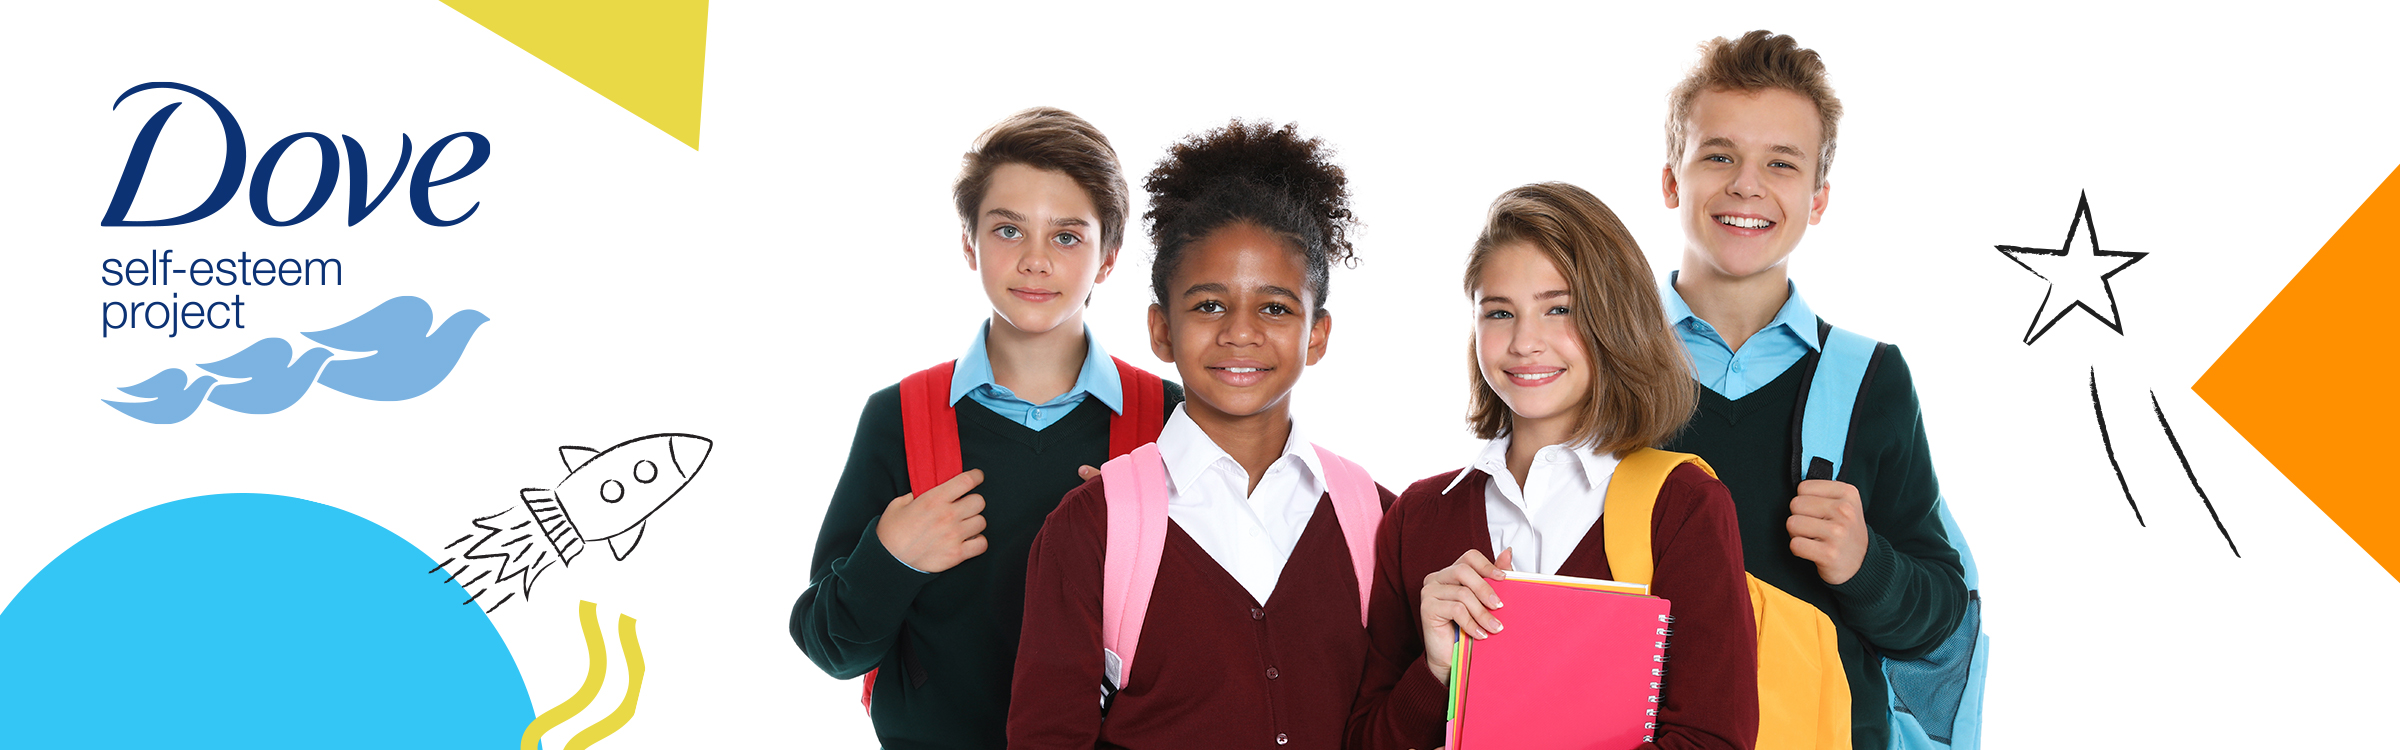 Four primary school pupils in uniform - two girls in red cardigans and two boys in green jumpers - all smiling and wearing rucksacs, on white background with bright abstract shapes in orange and blue and with blue Dove logo of three flying doves